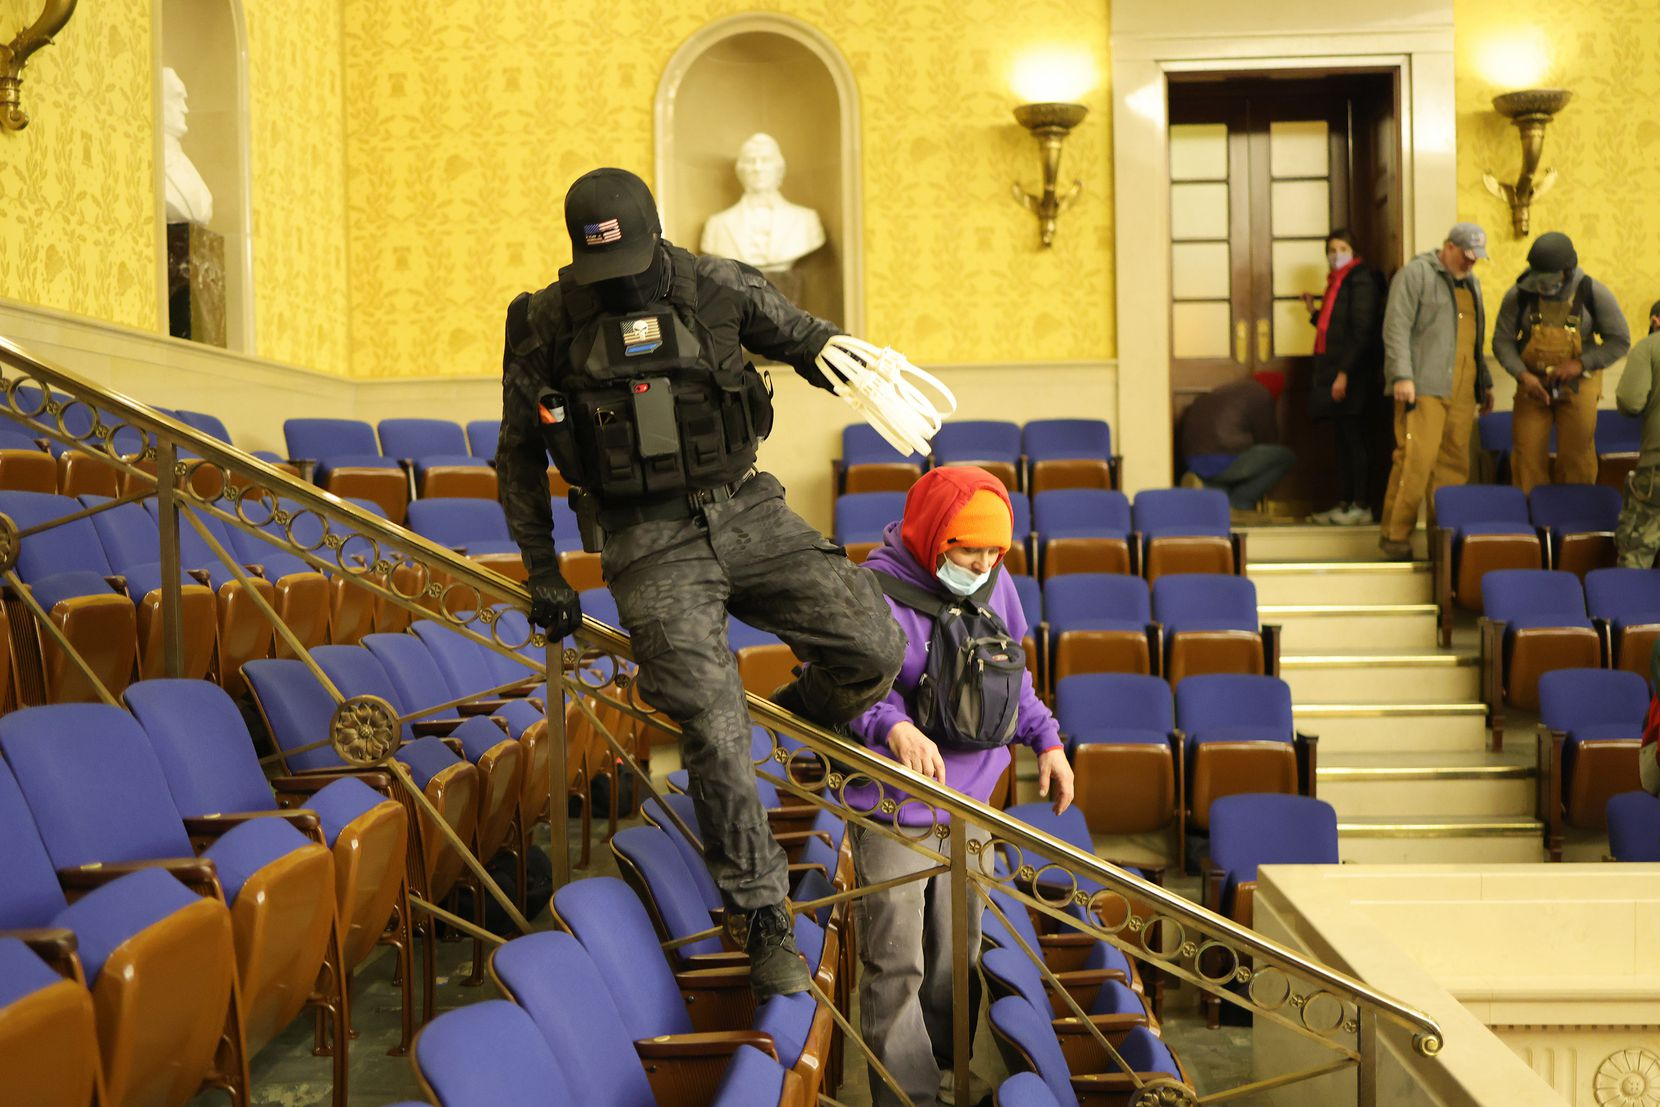 Protesters enter the Senate Chamber on Jan. 6, 2021. Two men photographed carrying zip-ties were charged Sunday in a federal court in the District of Columbia.